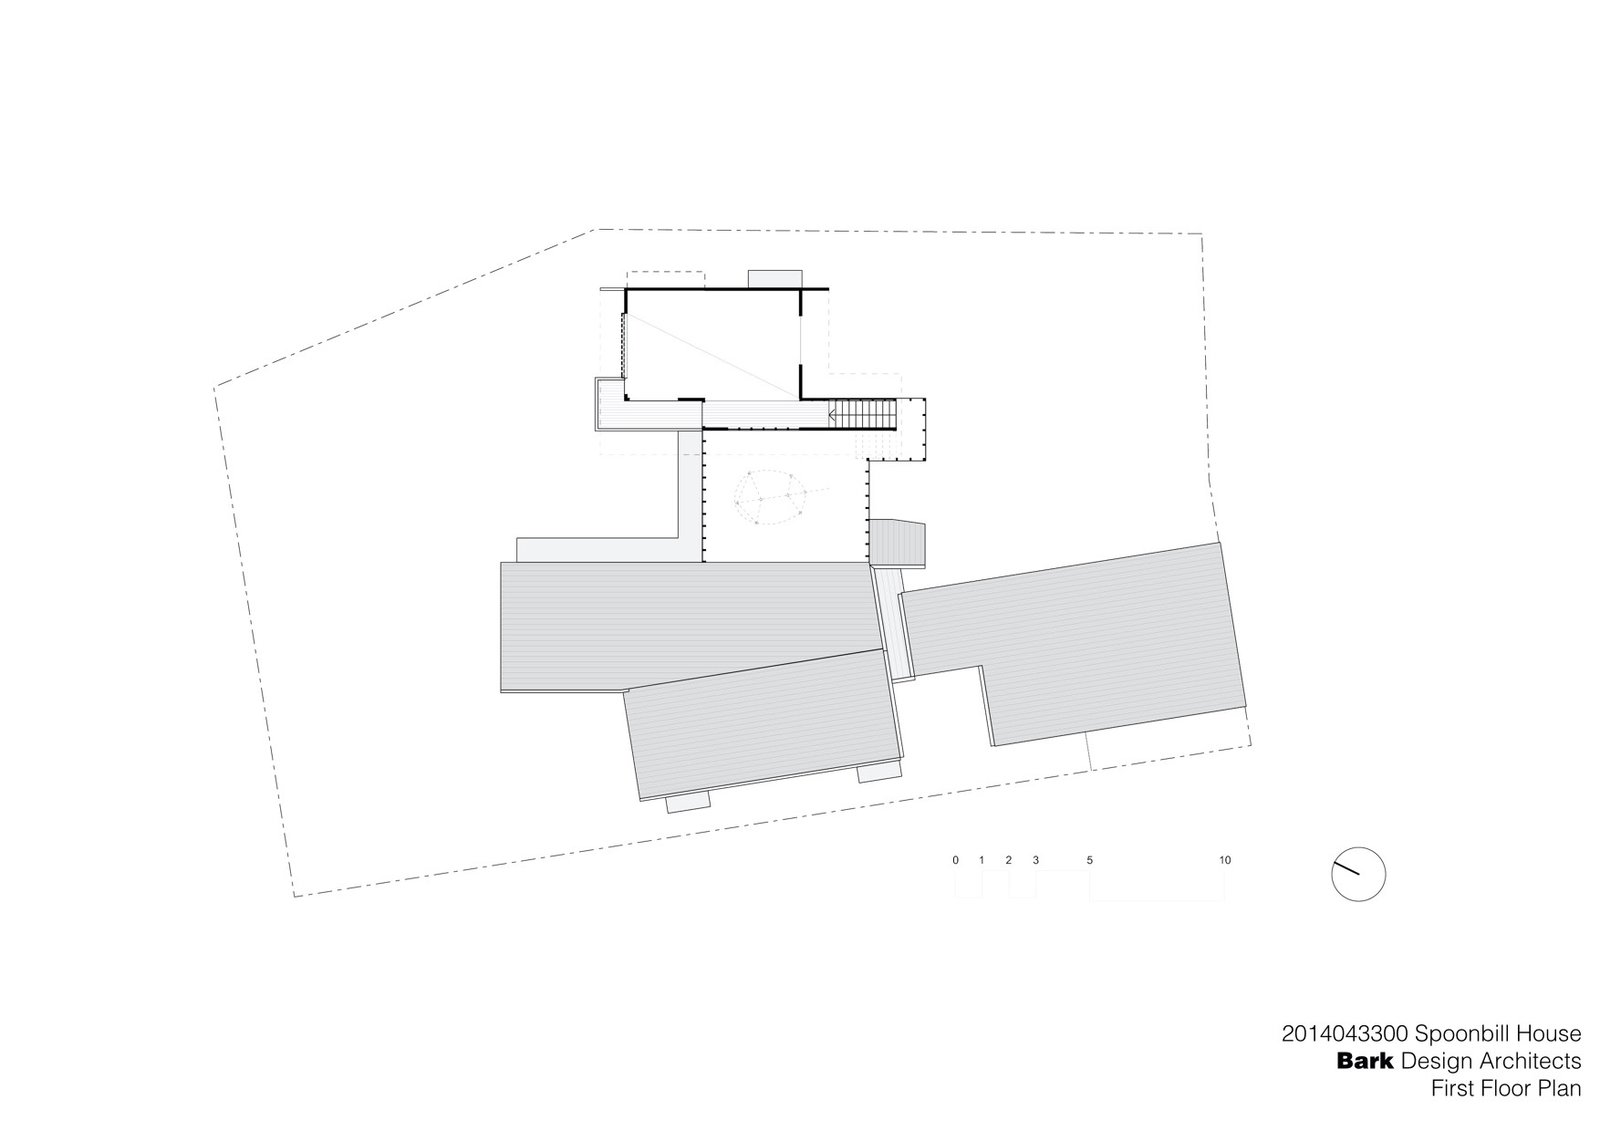 Spoonbill House First Floor Plan  Photo 10 of 10 in Vegetation Cocoons This Tranquil Beach House in Australia